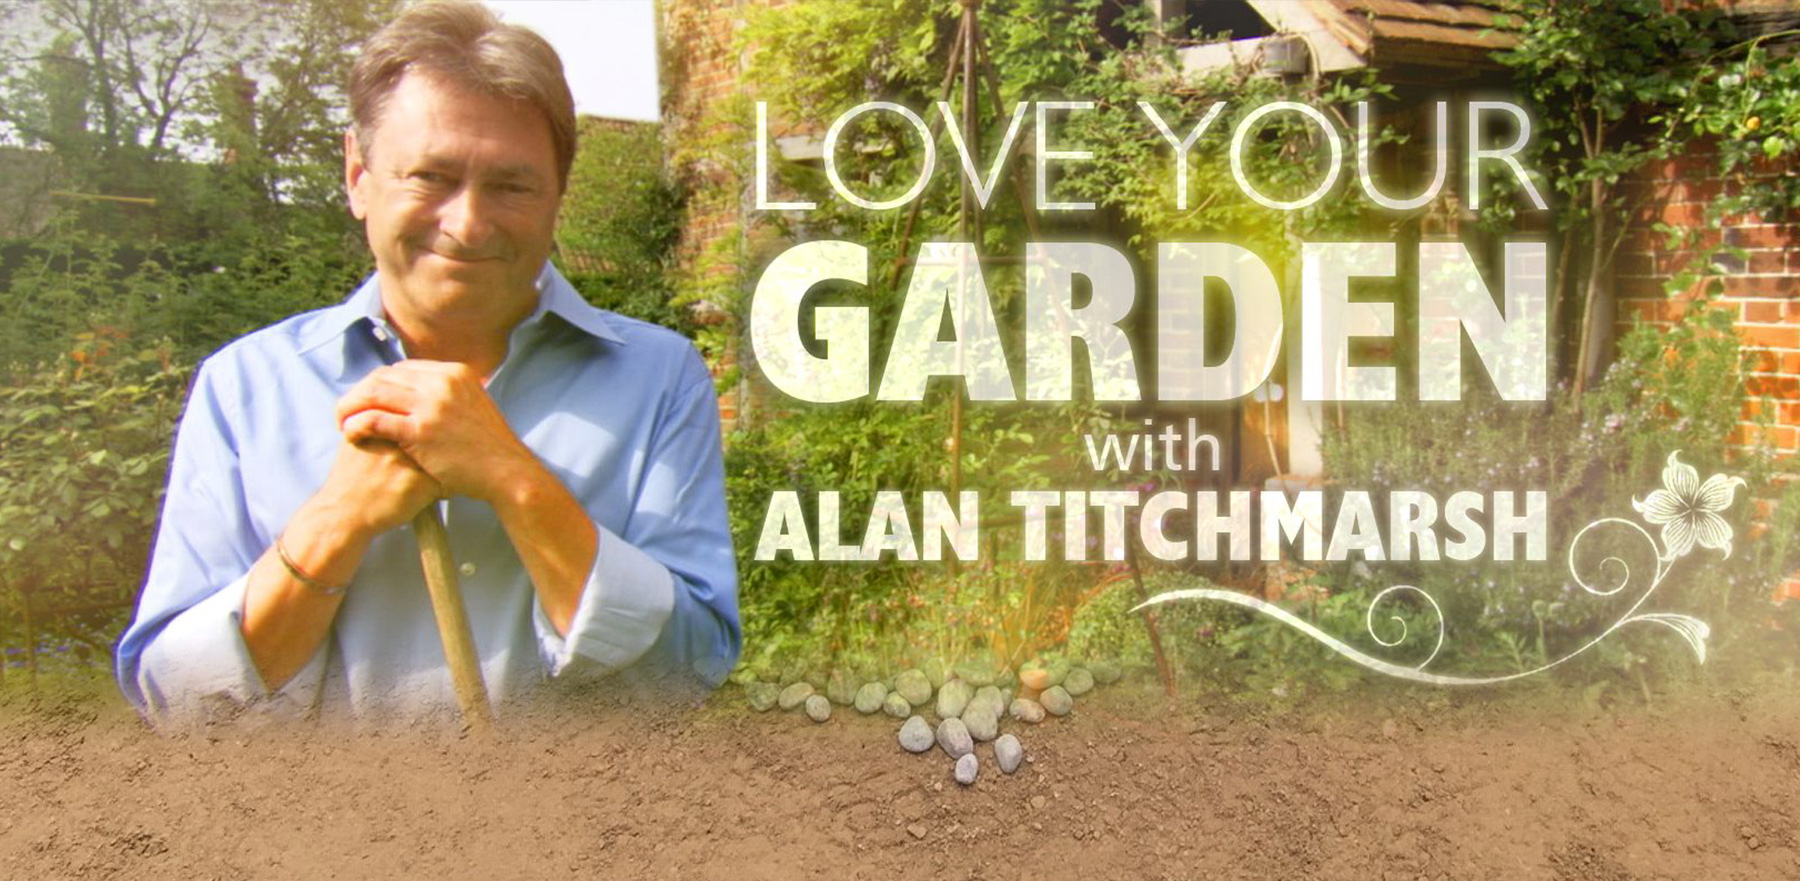 As used on Love Your Garden